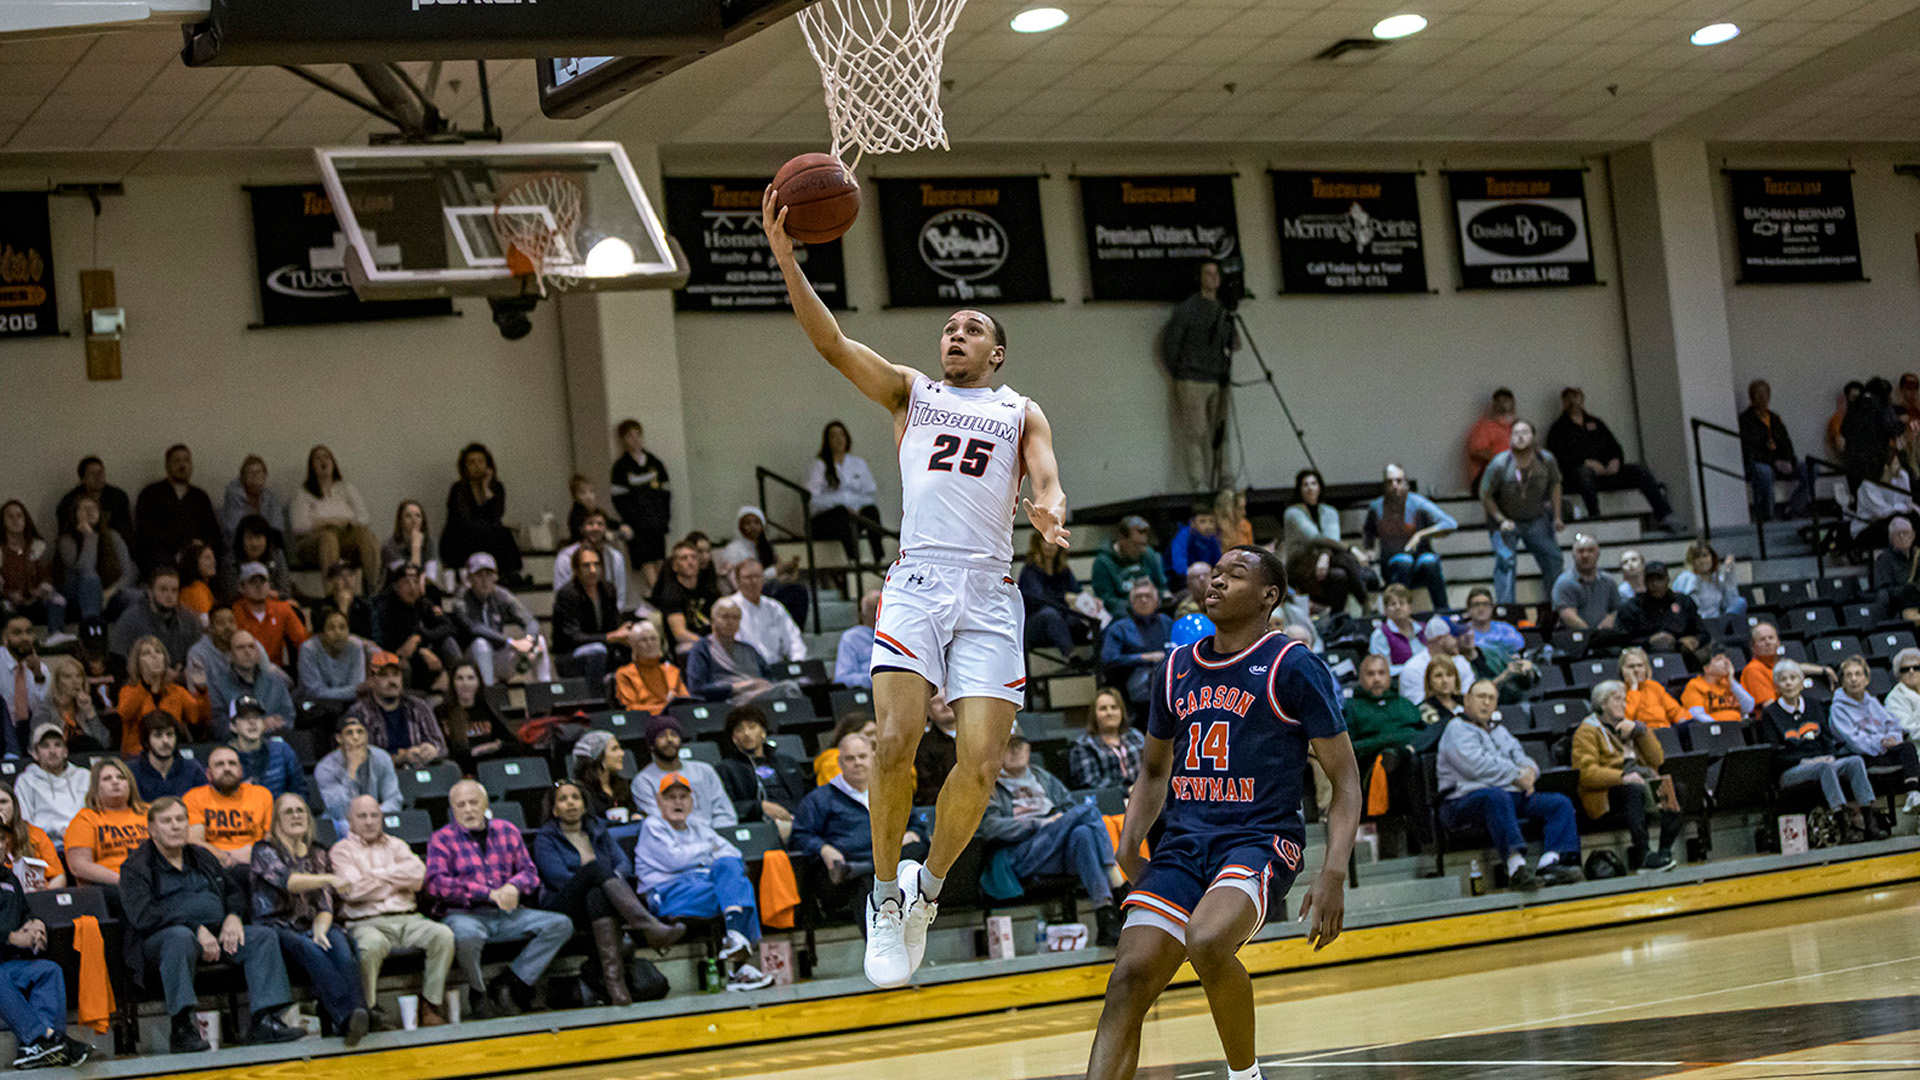 Dillon Smith scored 22 points to lead Tusculum to a 62-52 home win over Carson-Newman (photo by Chuck Williams)